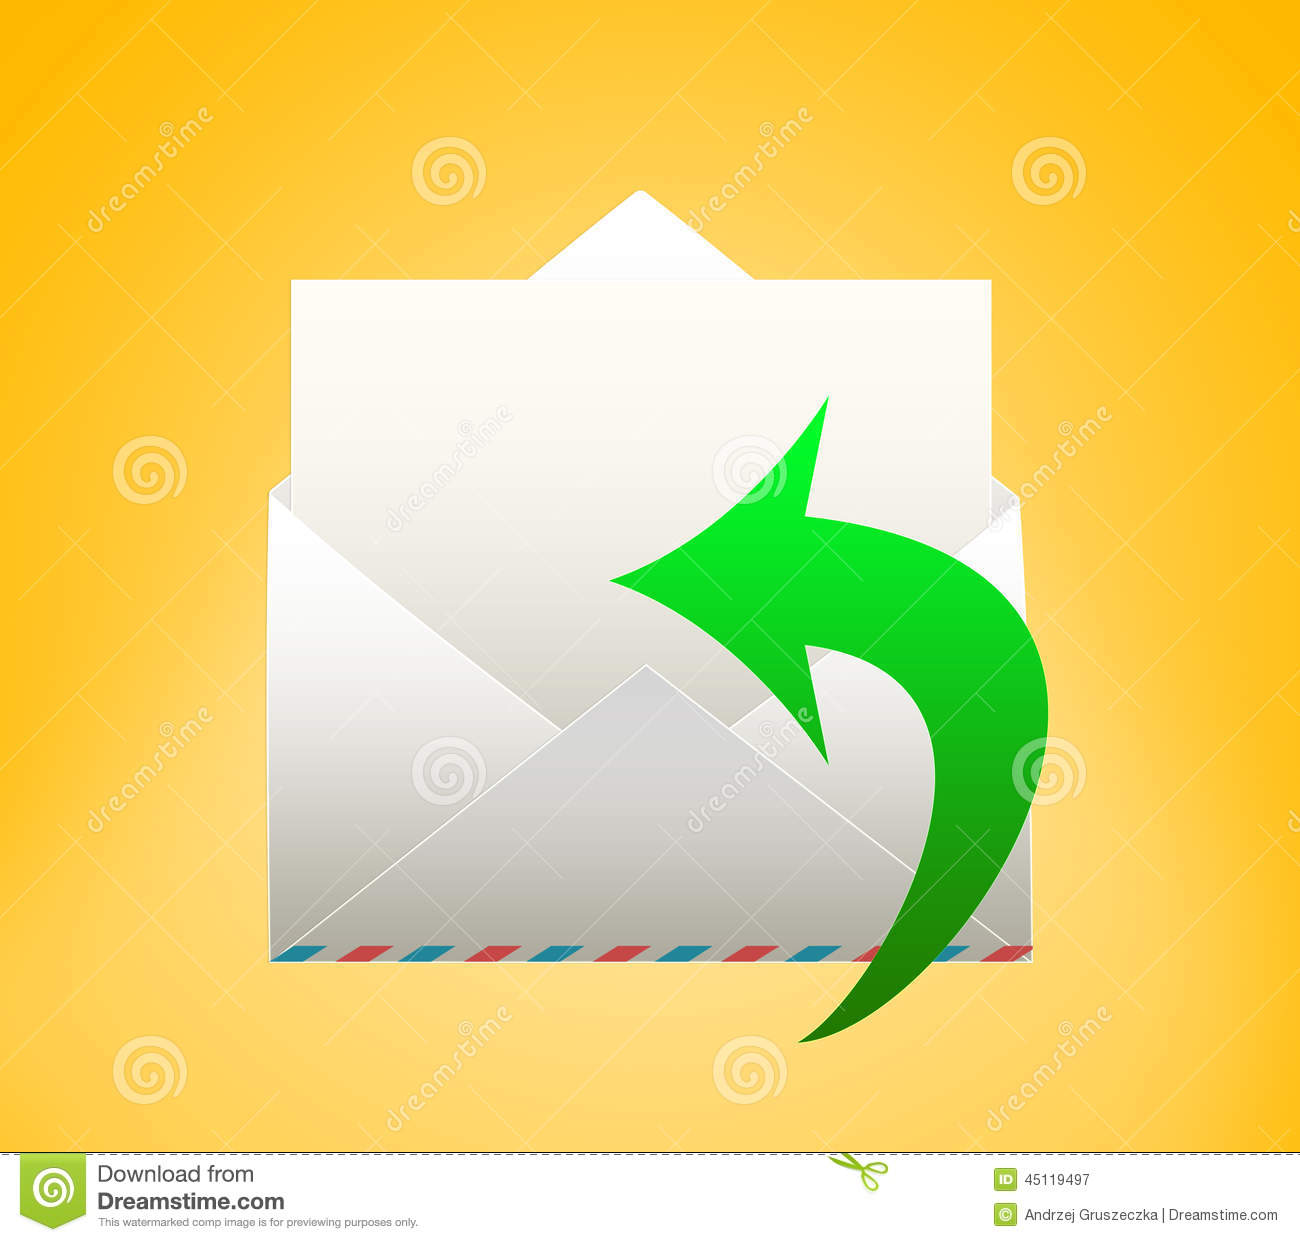 brm paper description As brm scans your paper case files our staff will create corresponding metadata file indexes for each, capturing any combination of matter descriptions, party designations, and case file and closed file numbers.